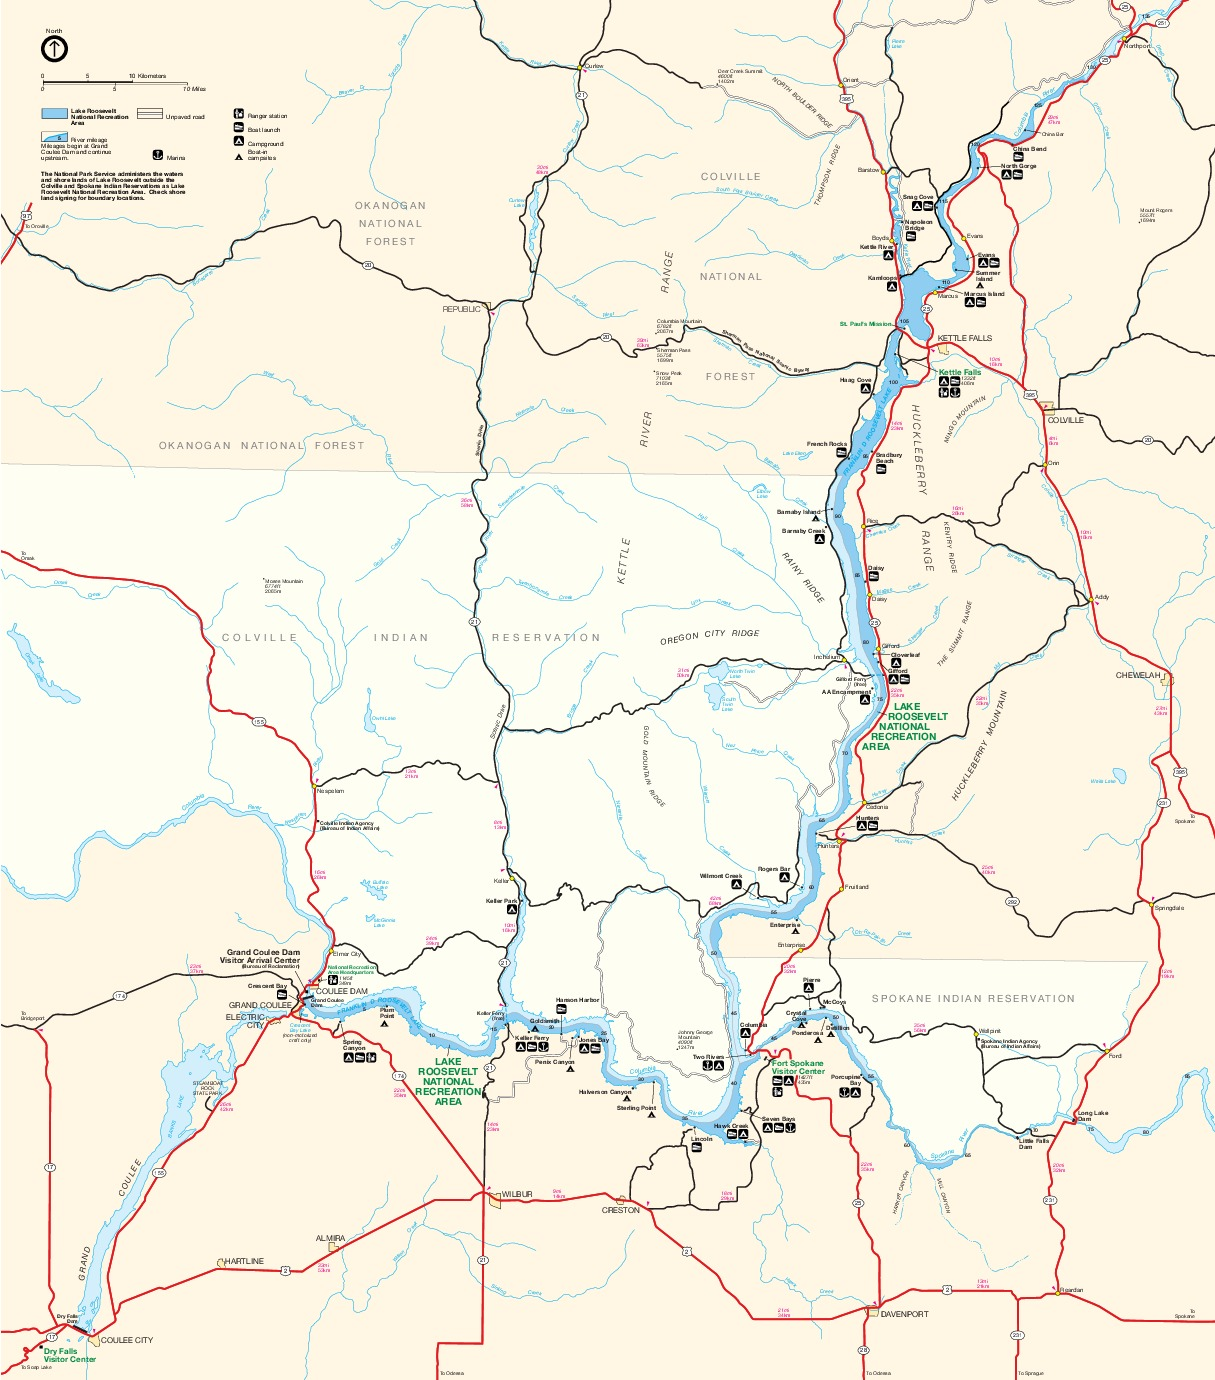 Park Map of Lake Roosevelt National Recreation Area, Washington, United States